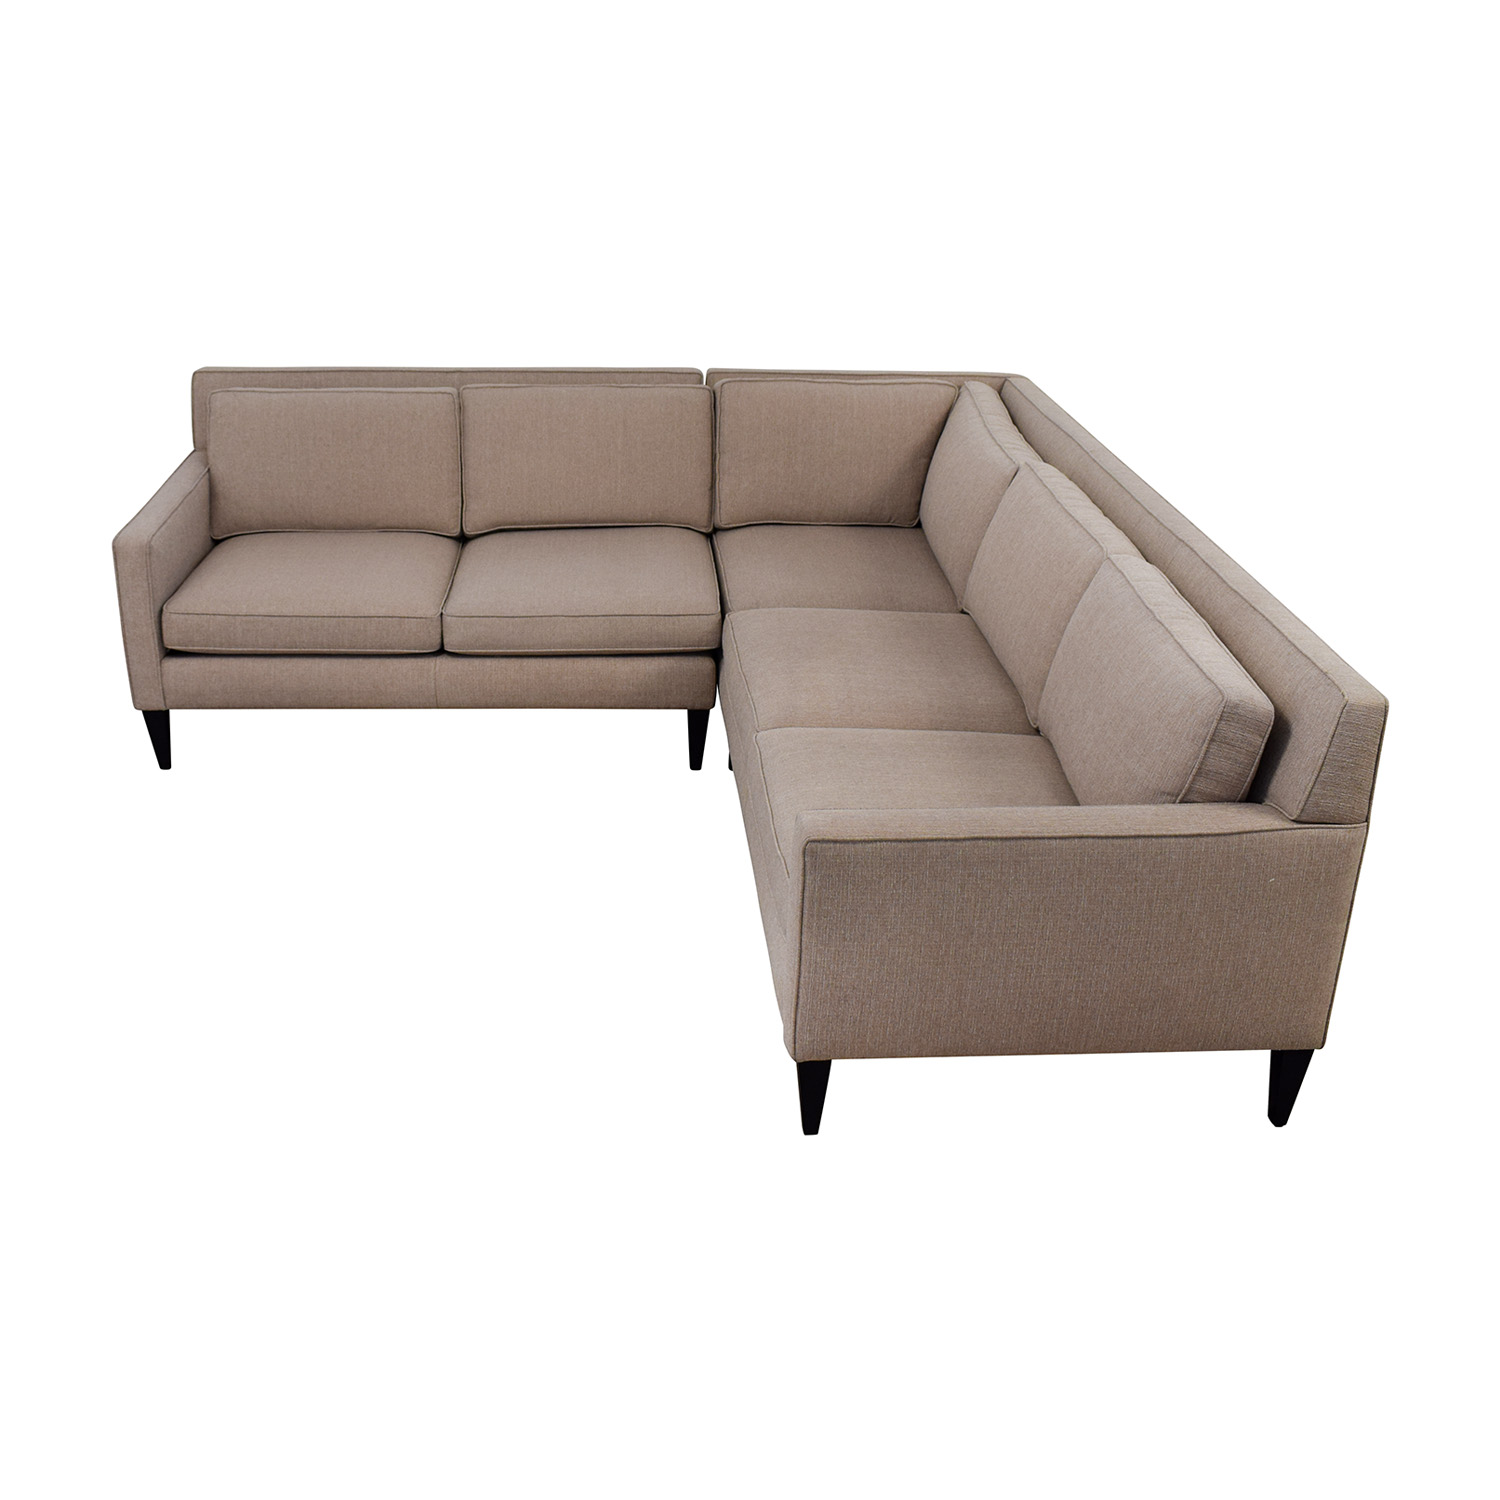 Crate & Barrel Crate & Barrel Rochelle Midcentury Modern Sectional for sale